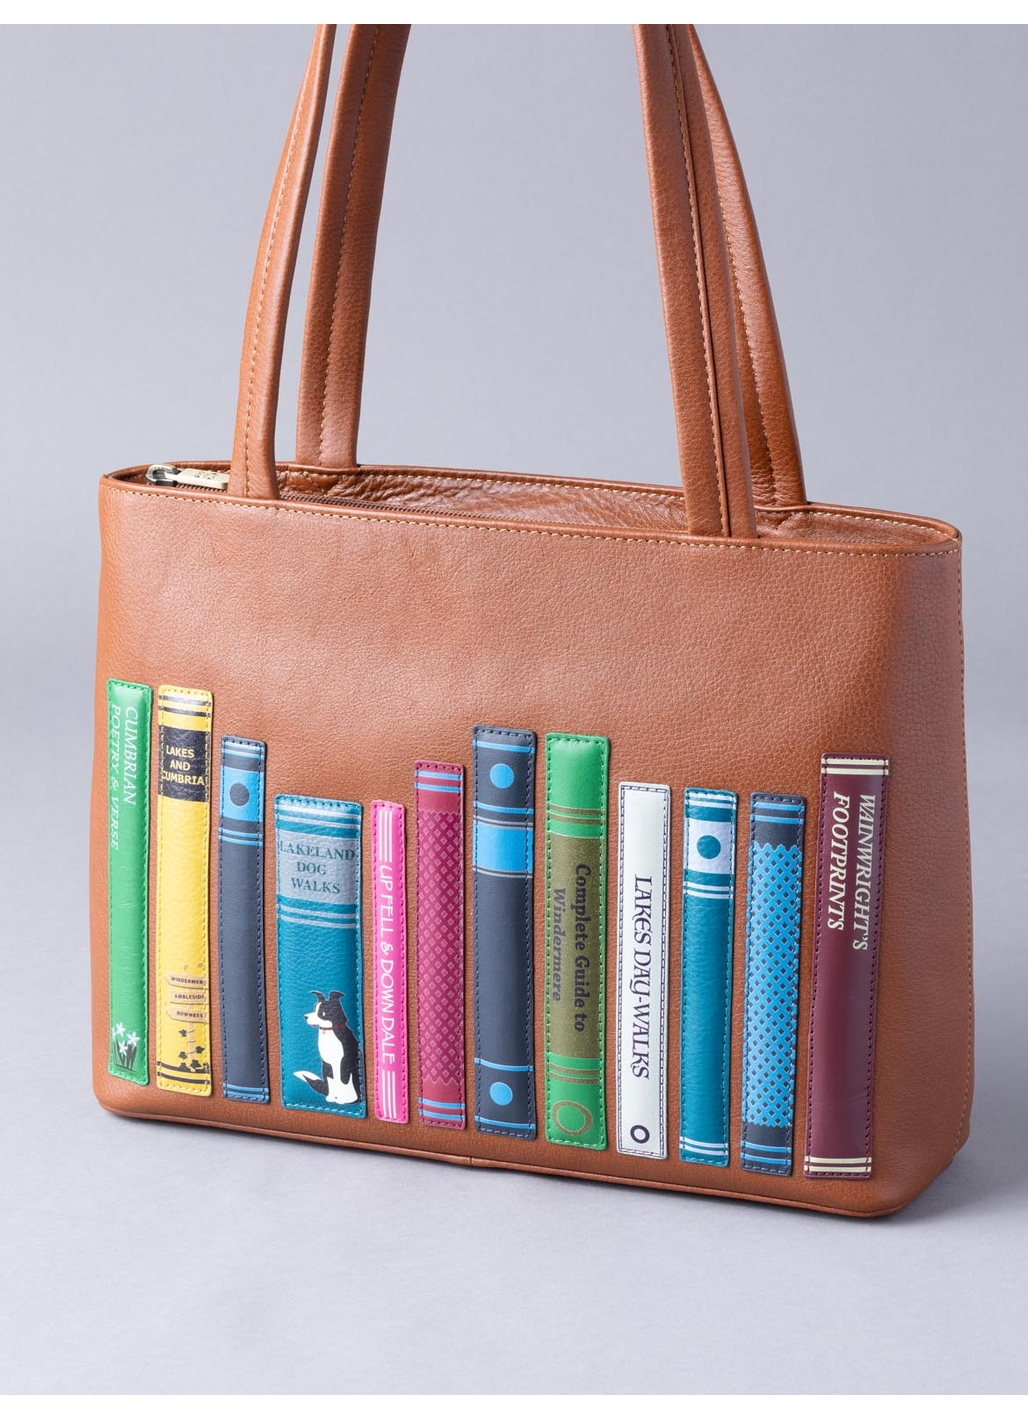 The Lakes Book Leather Shoulder Bag in Tan